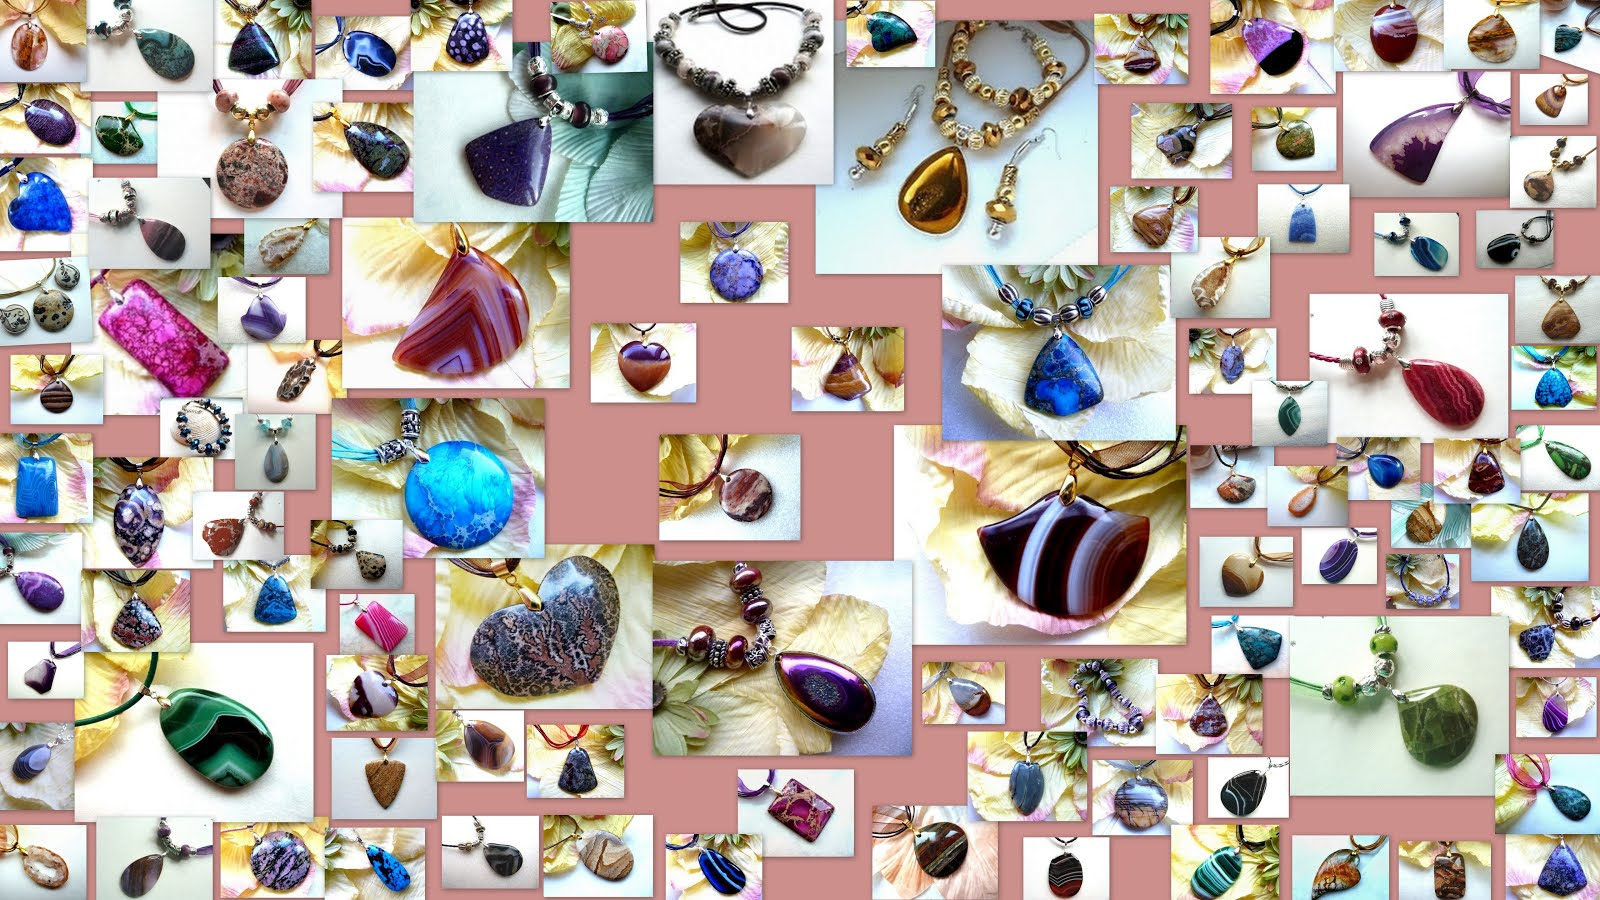 My Google Plus Handmade Jewellery and Cards page